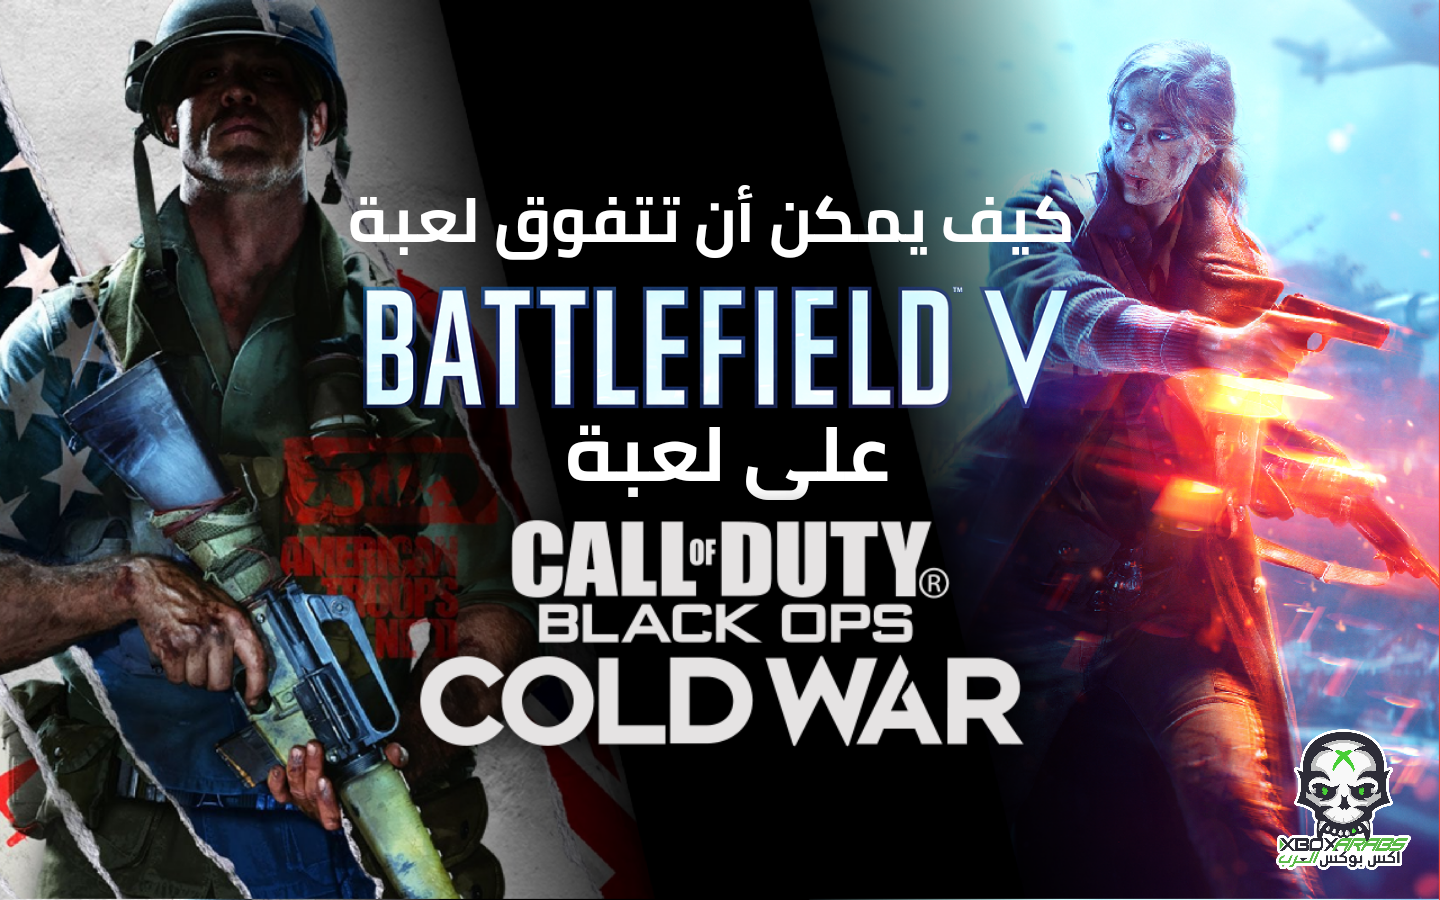 BattleFiled 6 VS Call Of Duty Black Ops Cold War